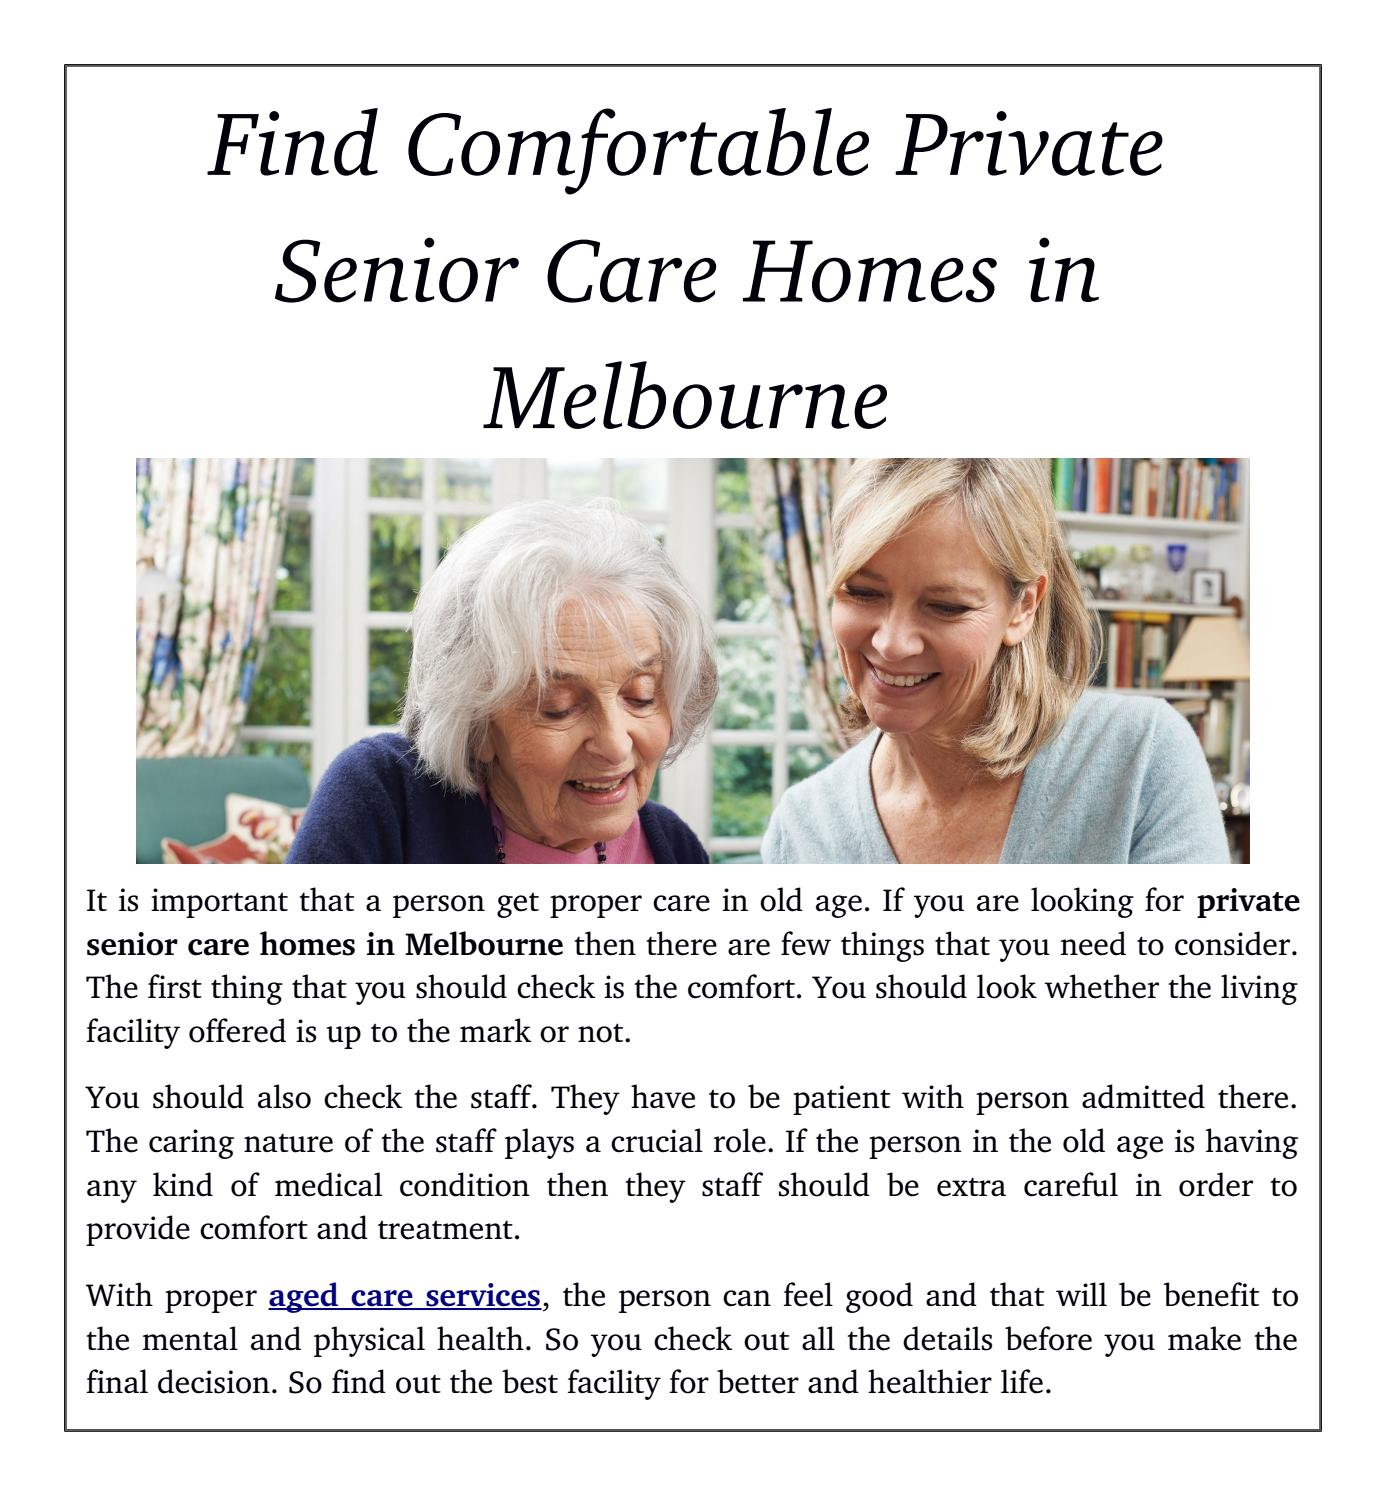 importance of old age care